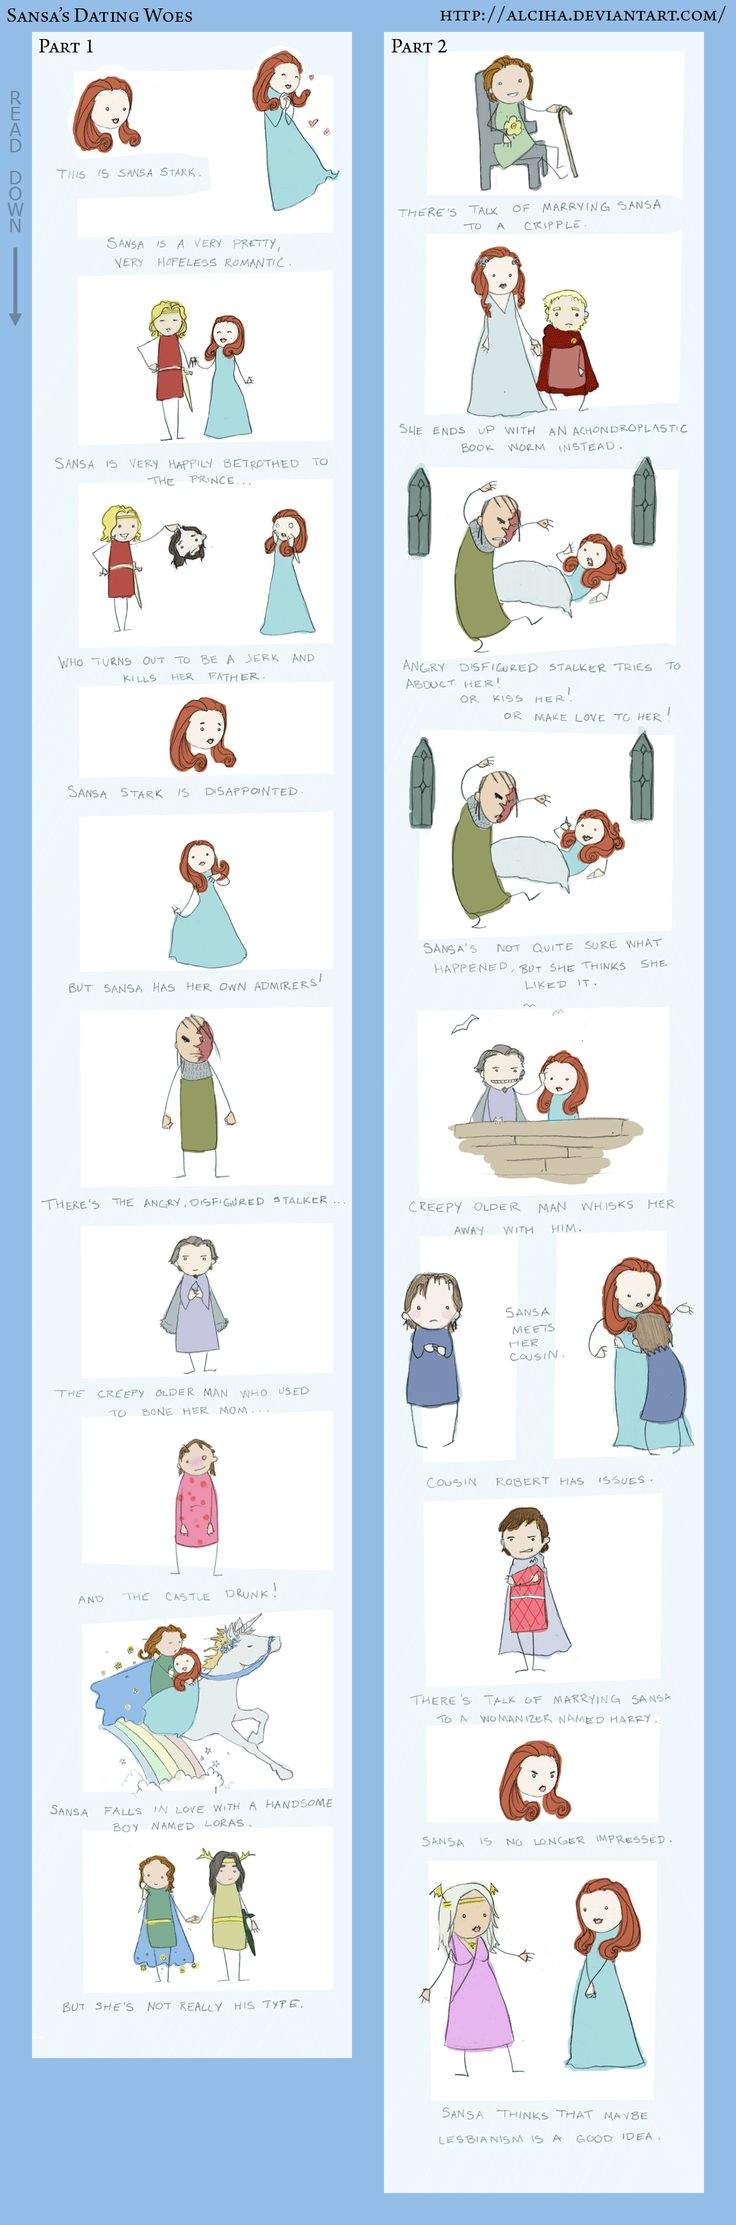 dating woes of sansa stark I do think the answer to the whole conundrum (after 2 full threads) can best be summed up by the line in the dating woes of sansa stark comic: sansa is not quite .